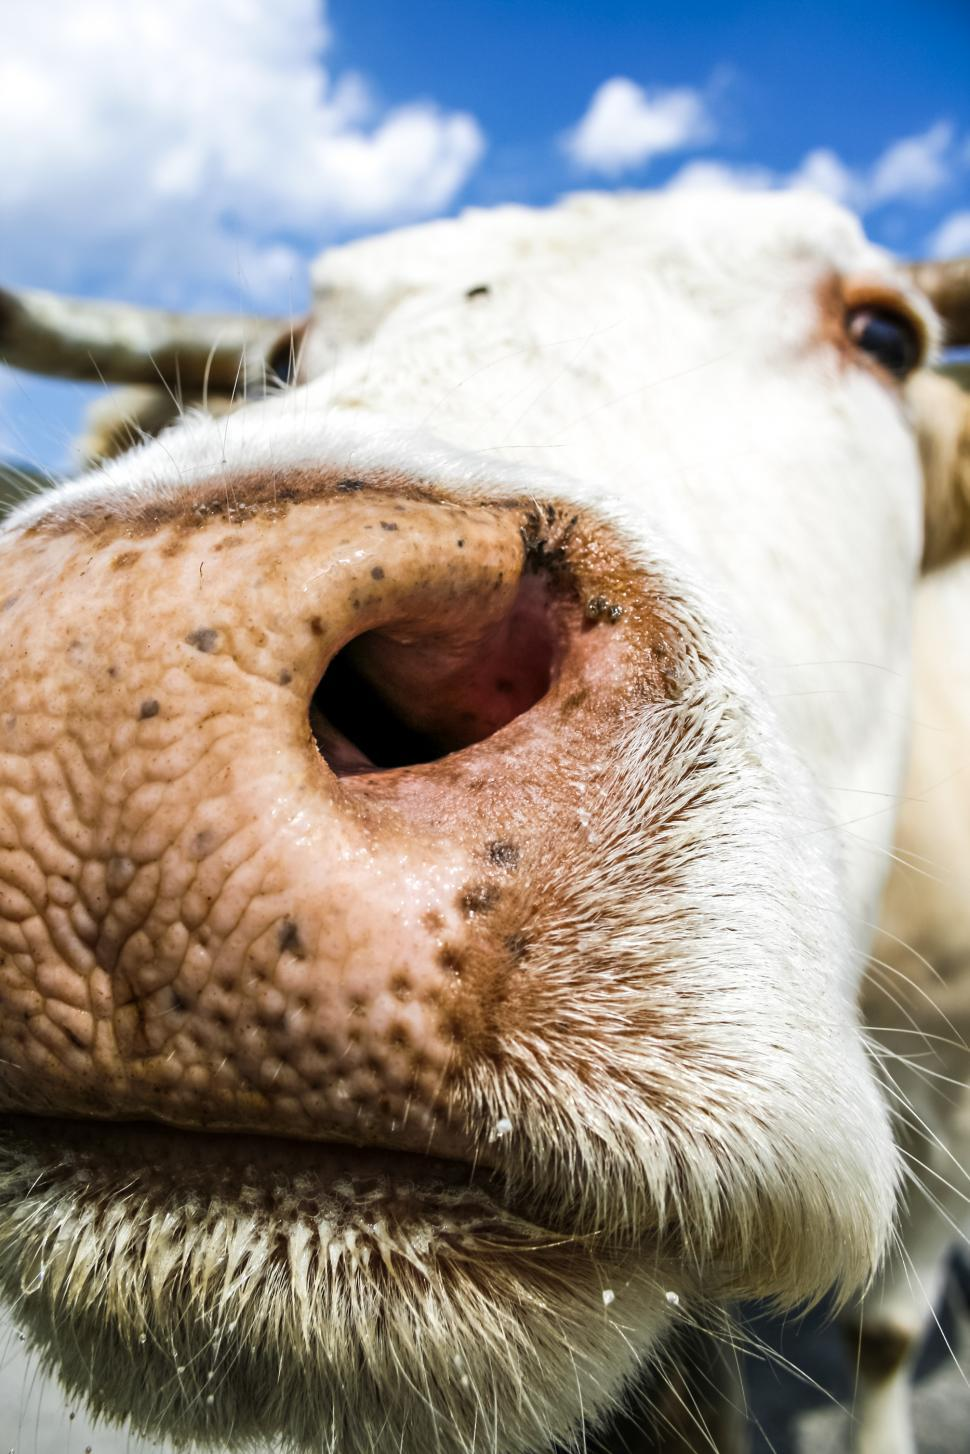 Download Free Stock HD Photo of cow muzzle close up Online